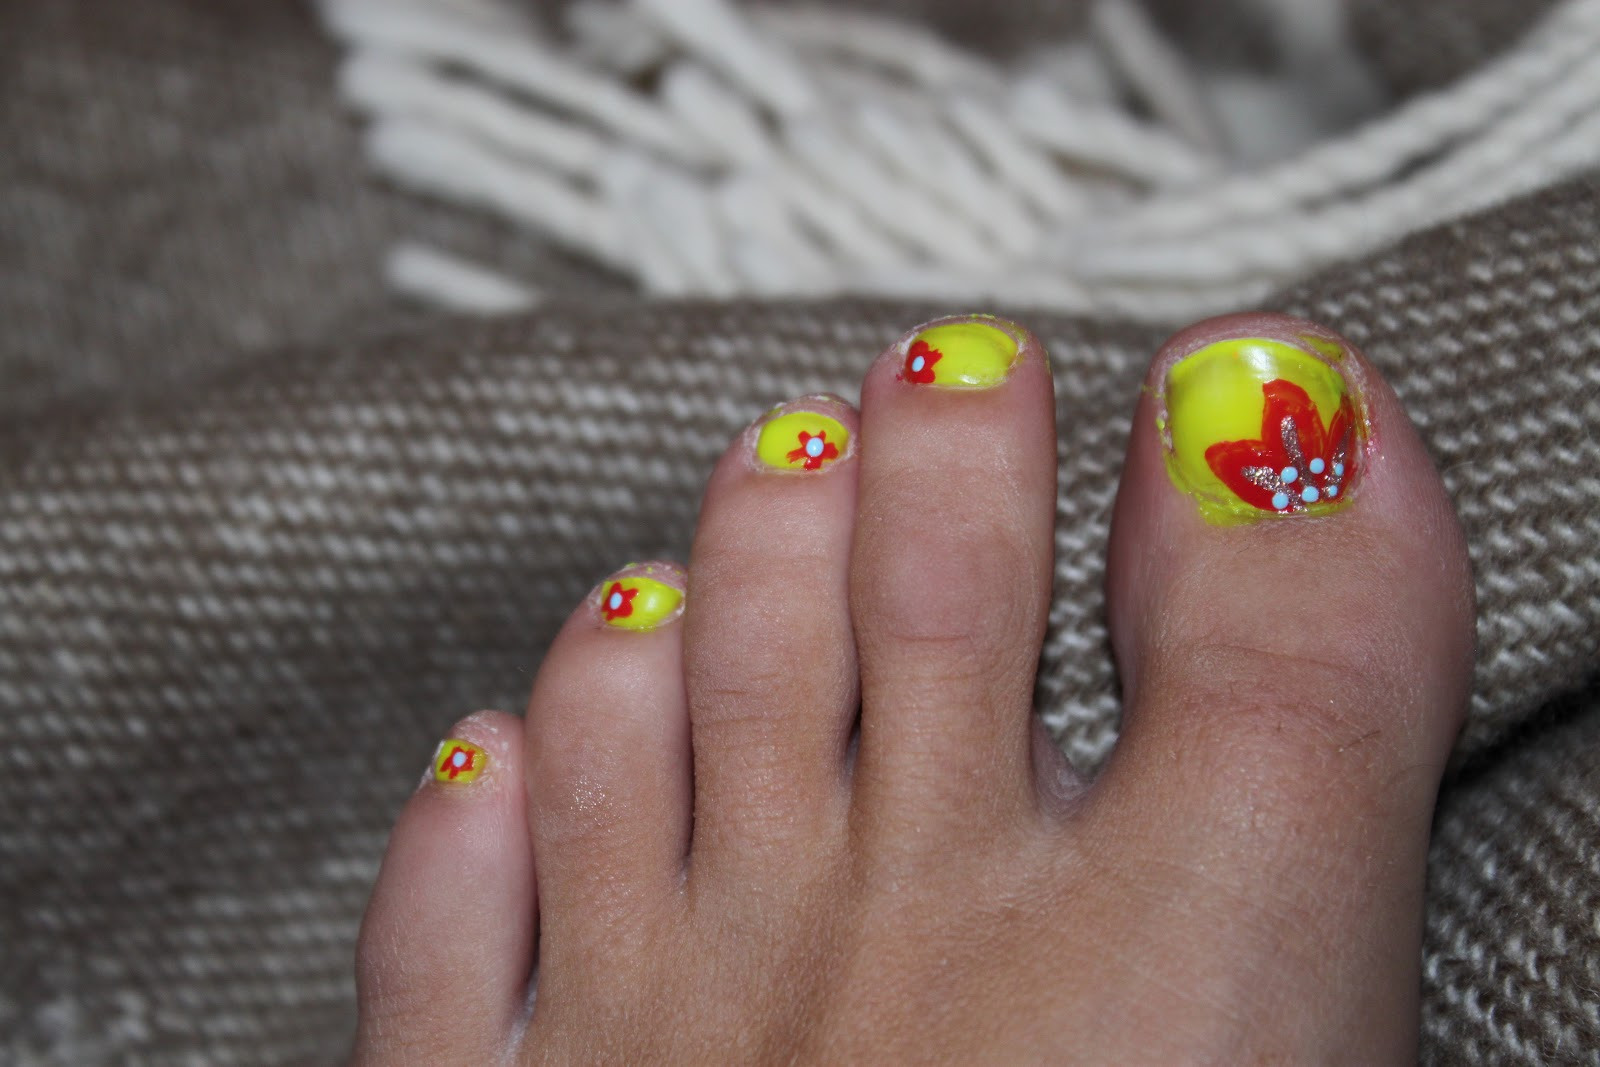 Yellow Toenails Are Usually A Sign Of Trouble